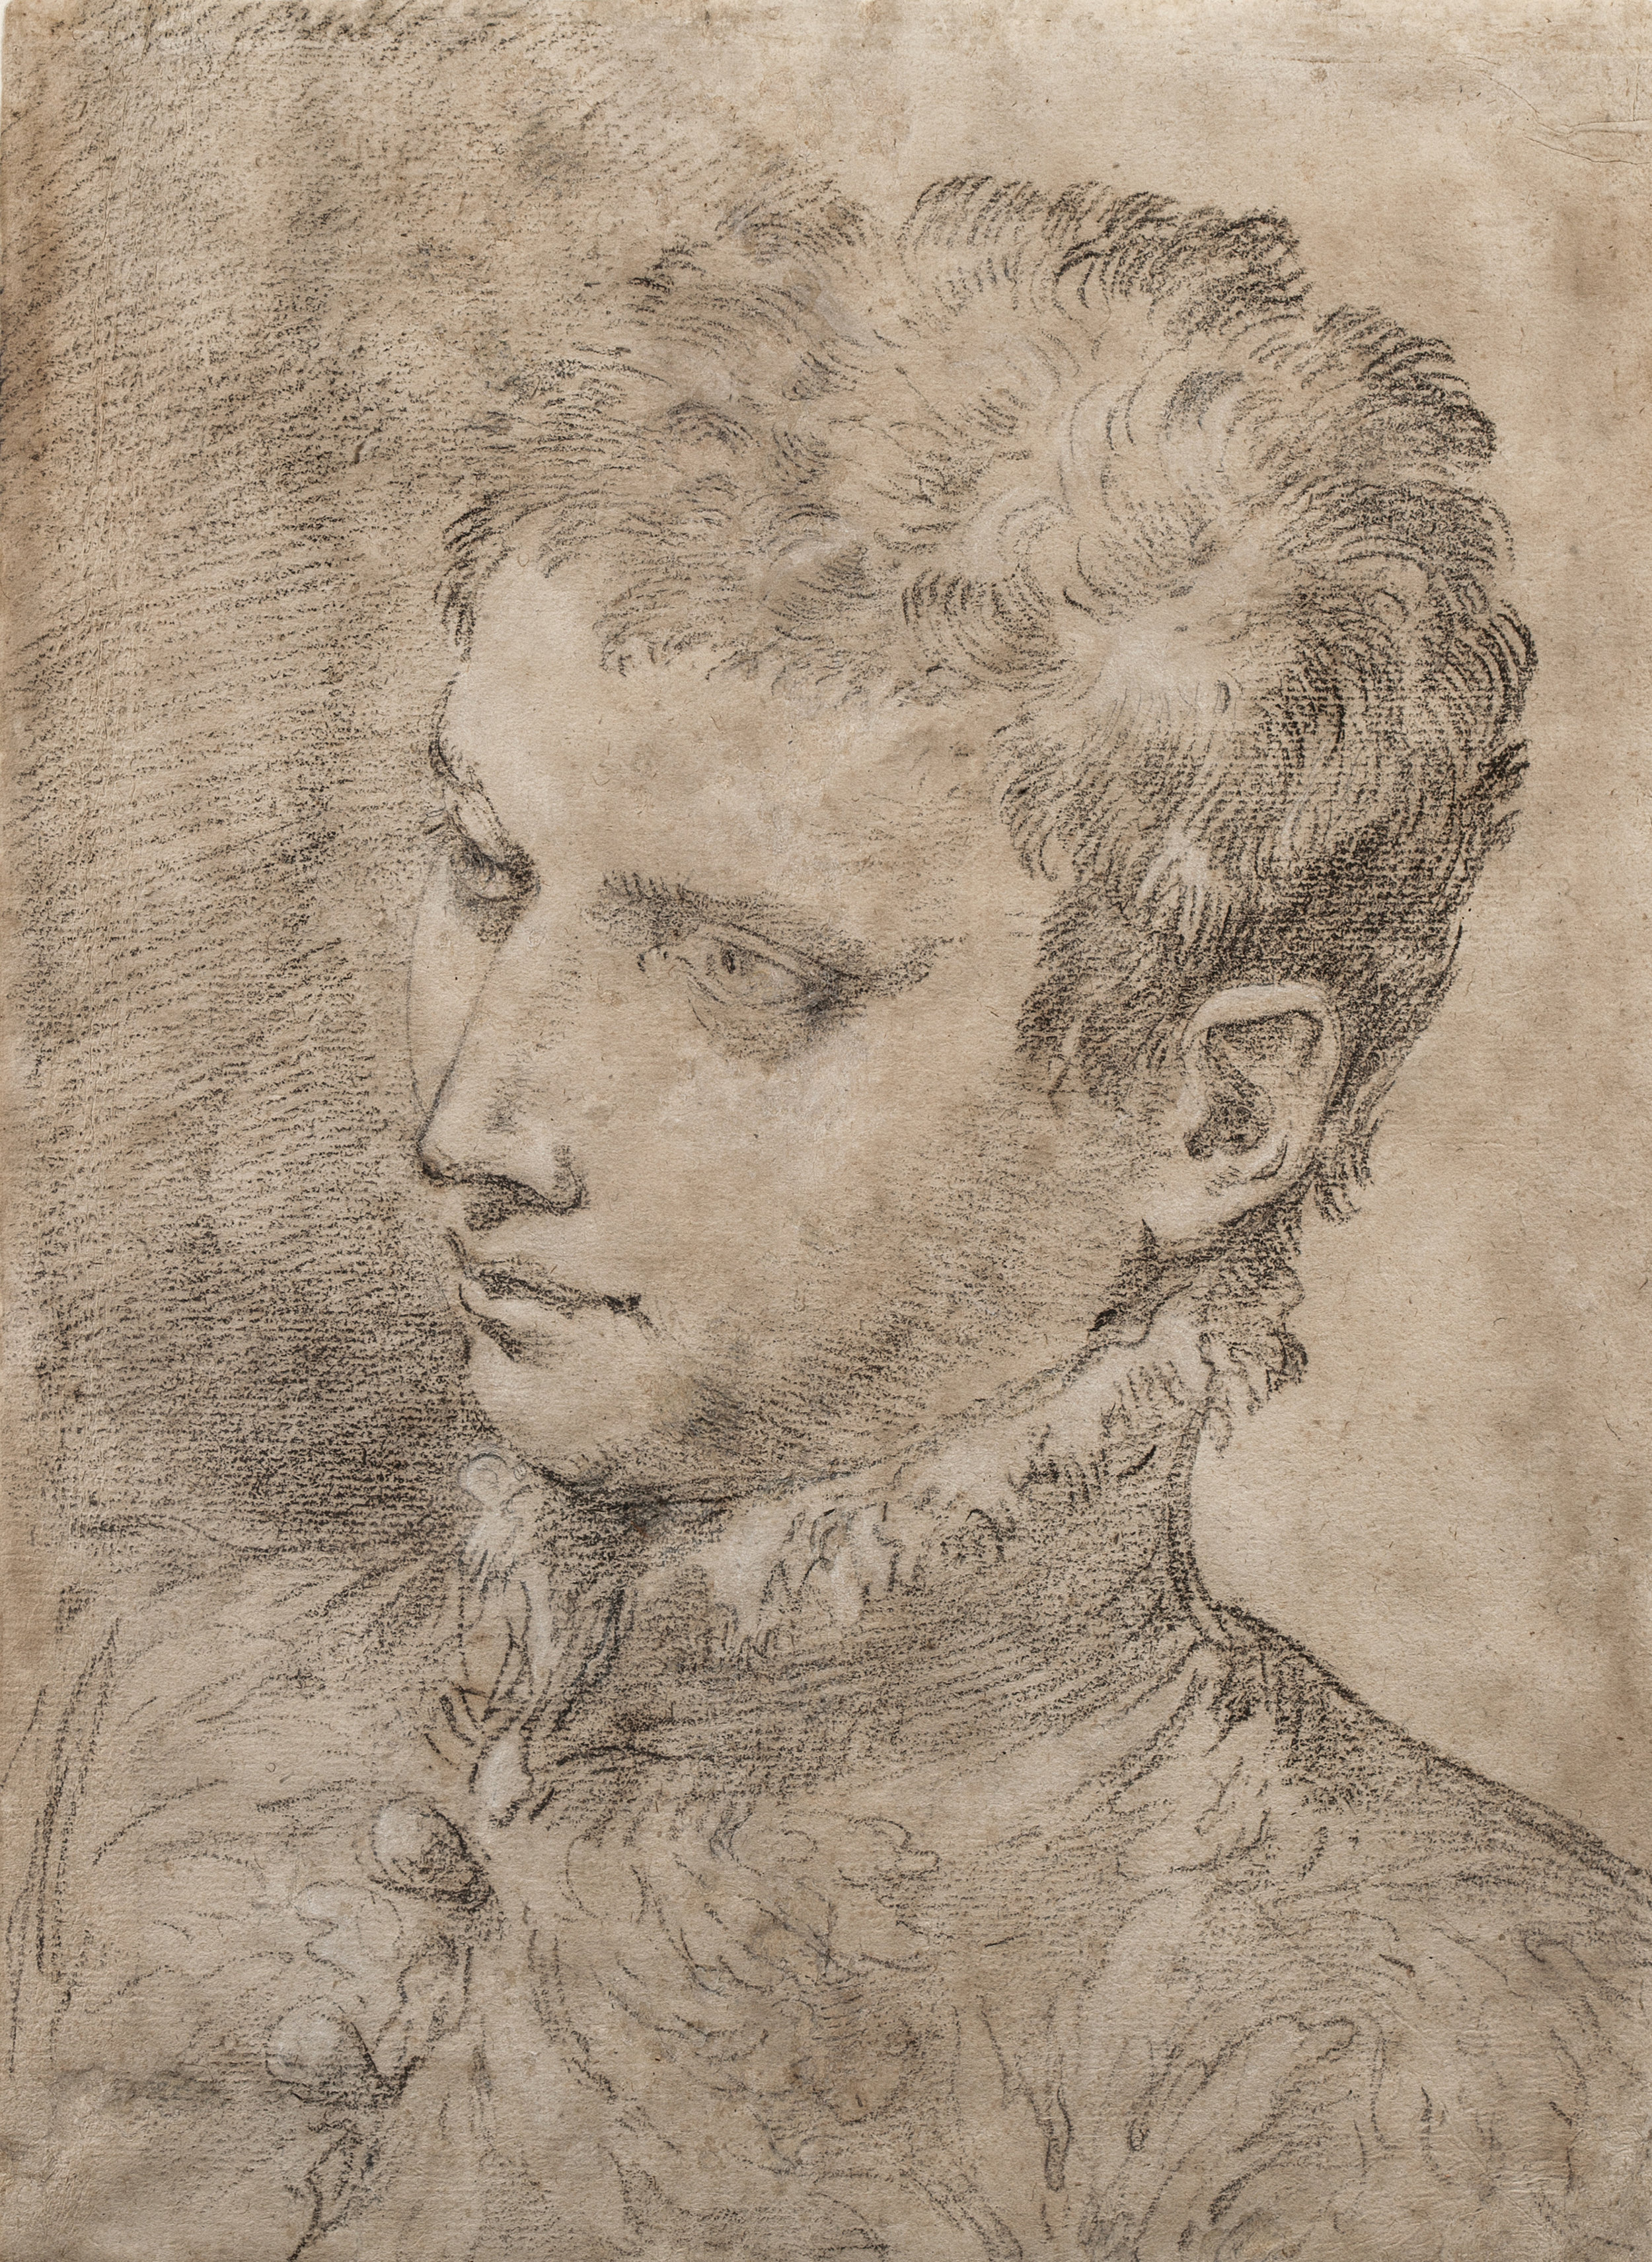 Donato Creti  (b. 1671)  Study of a Young Man  16 ½ x 12 in. black chalk with white heightening on light brown paper